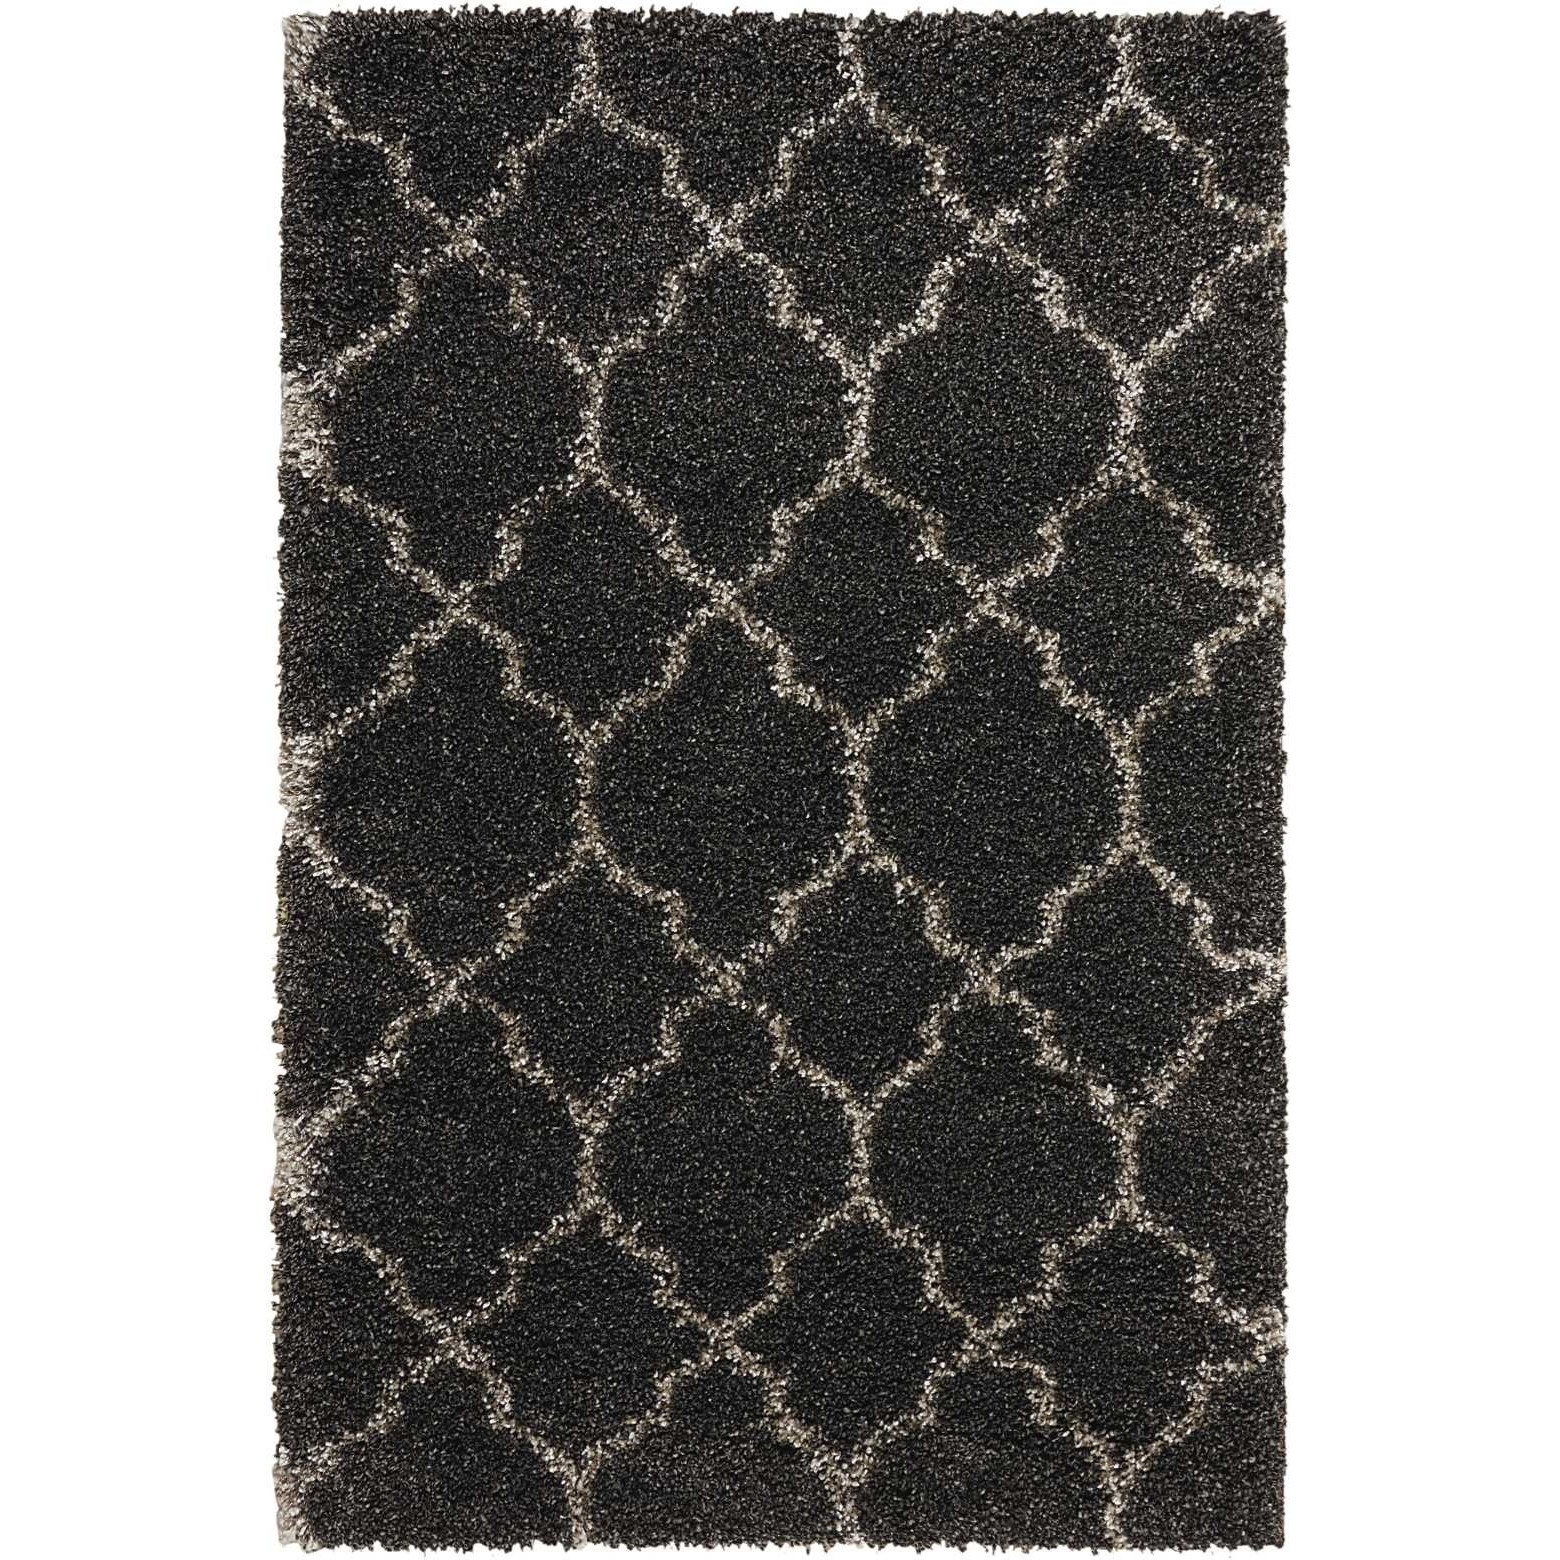 Amore Amore AMOR2 Black 3'x5' Area Rug by Nourison at Home Collections Furniture